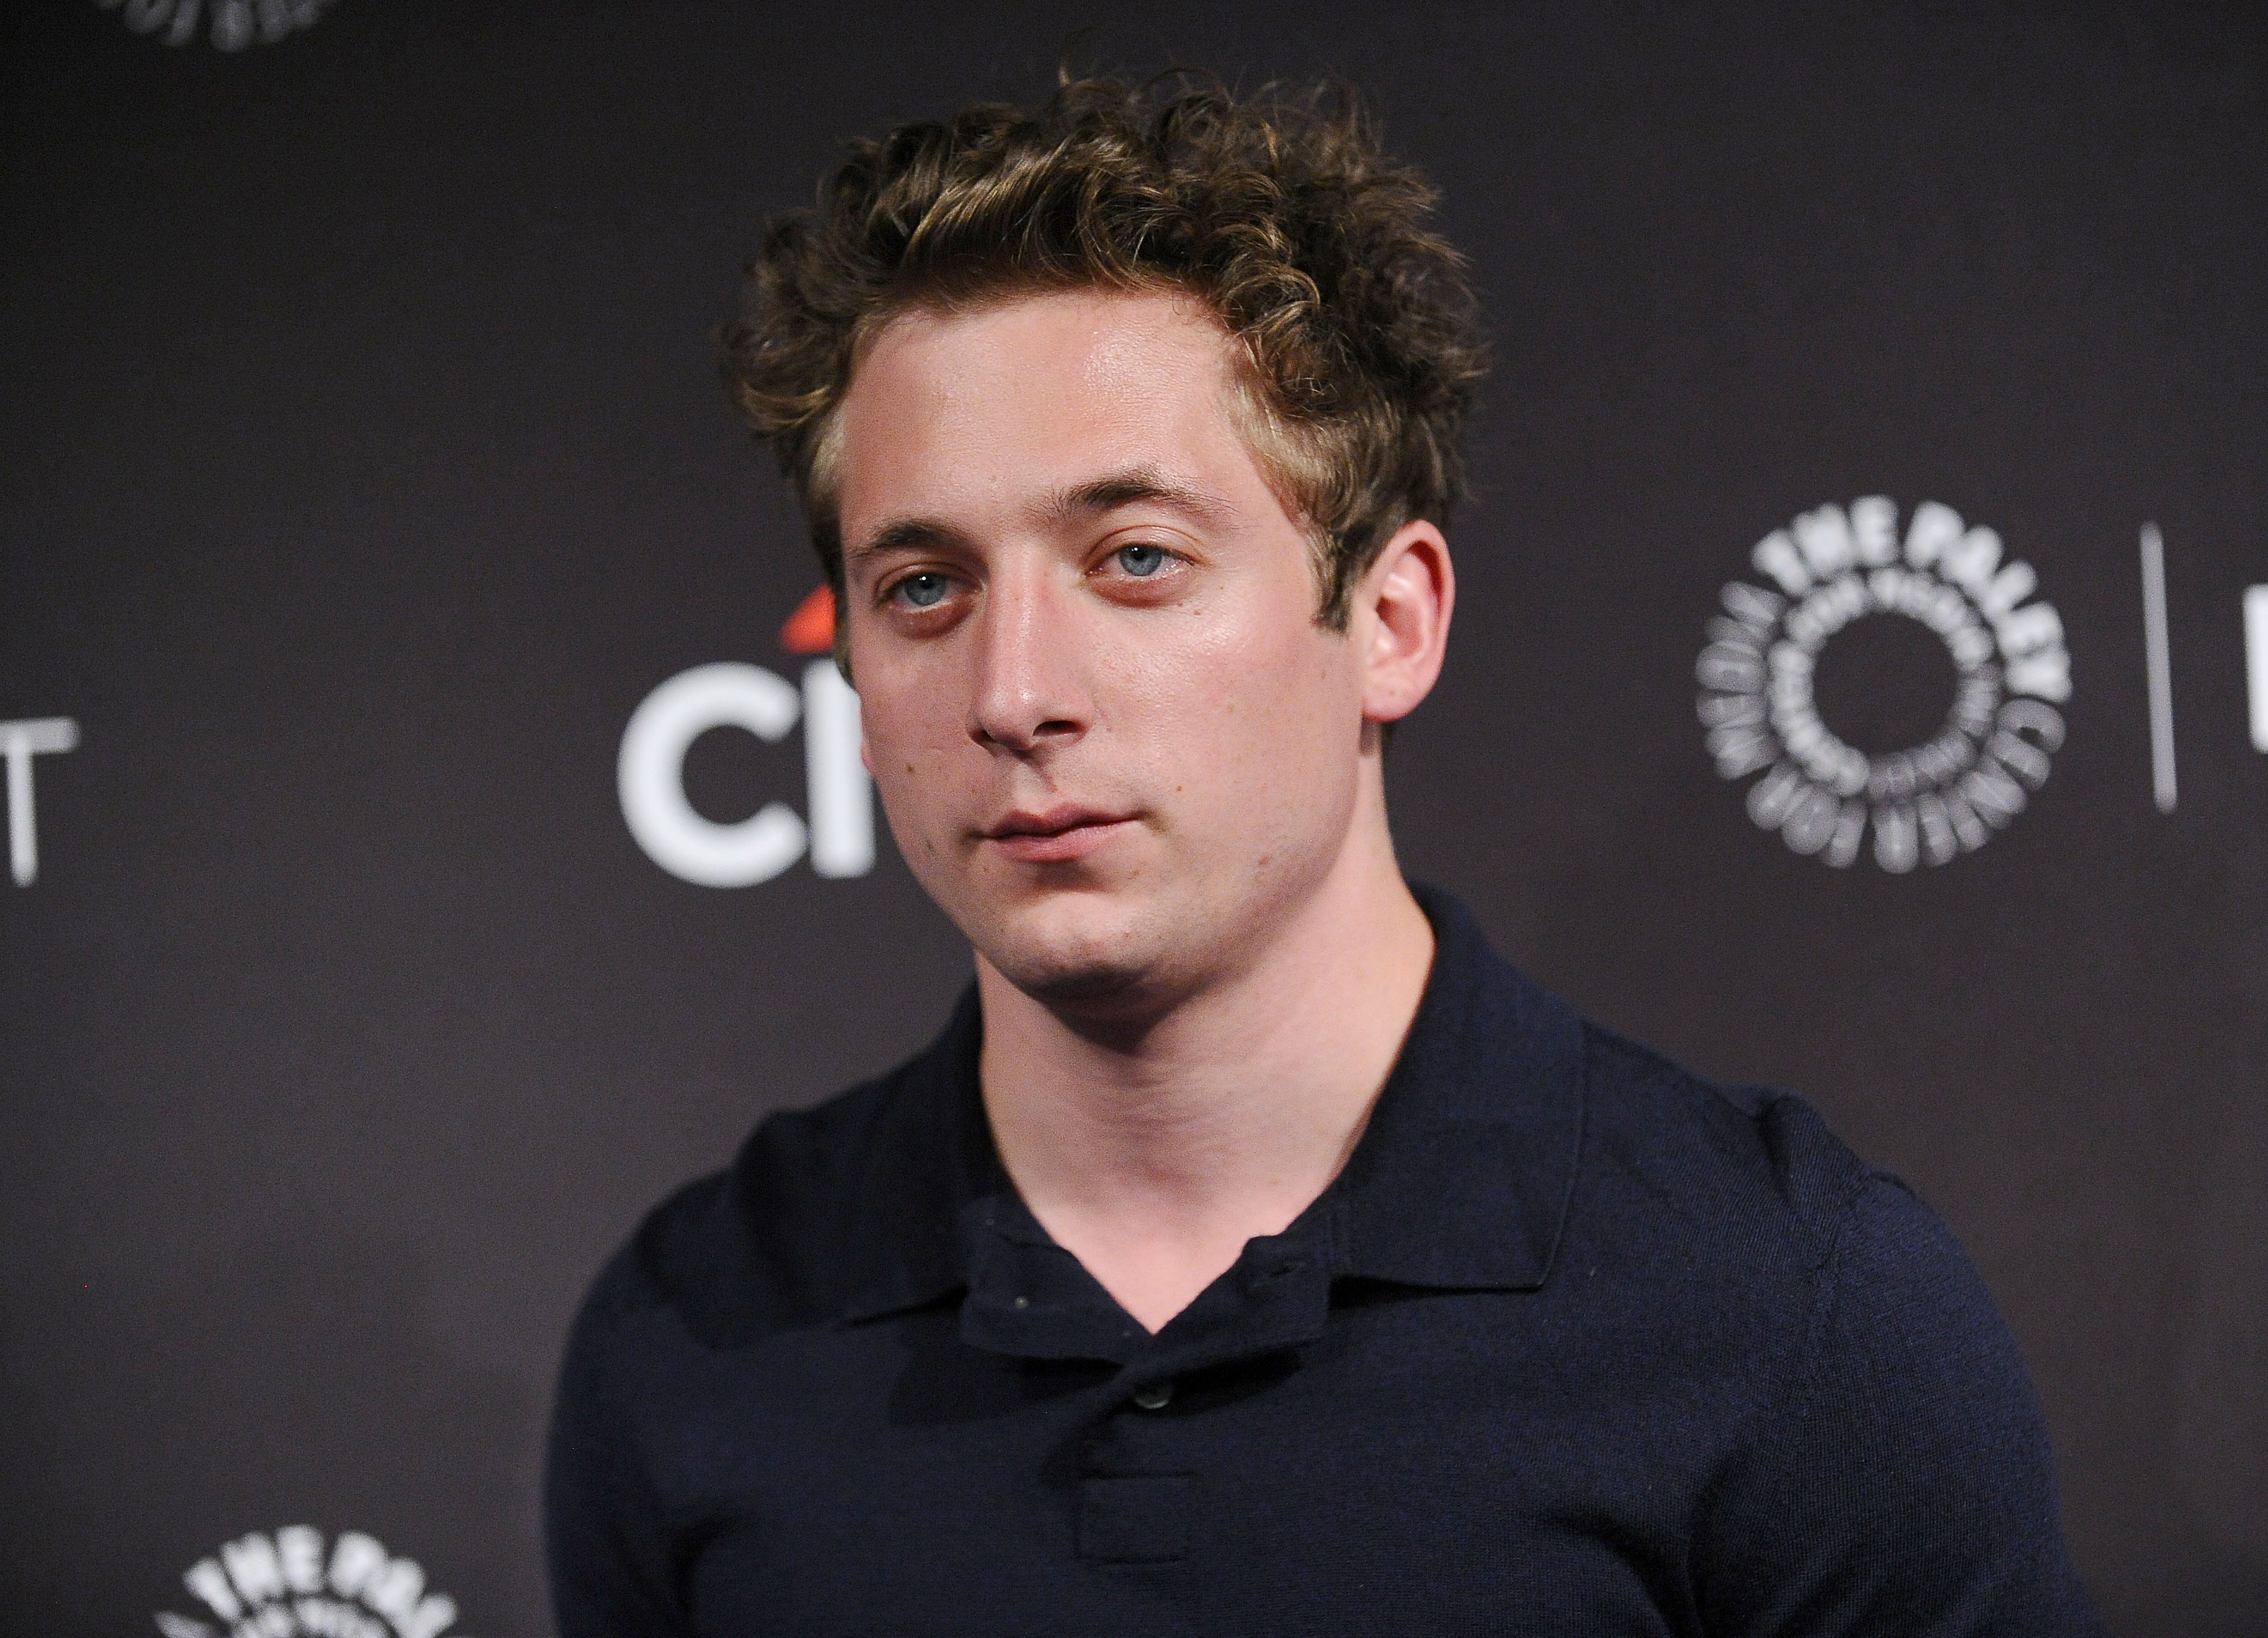 Shameless' Star Jeremy Allen White and Addison Timlin Announce